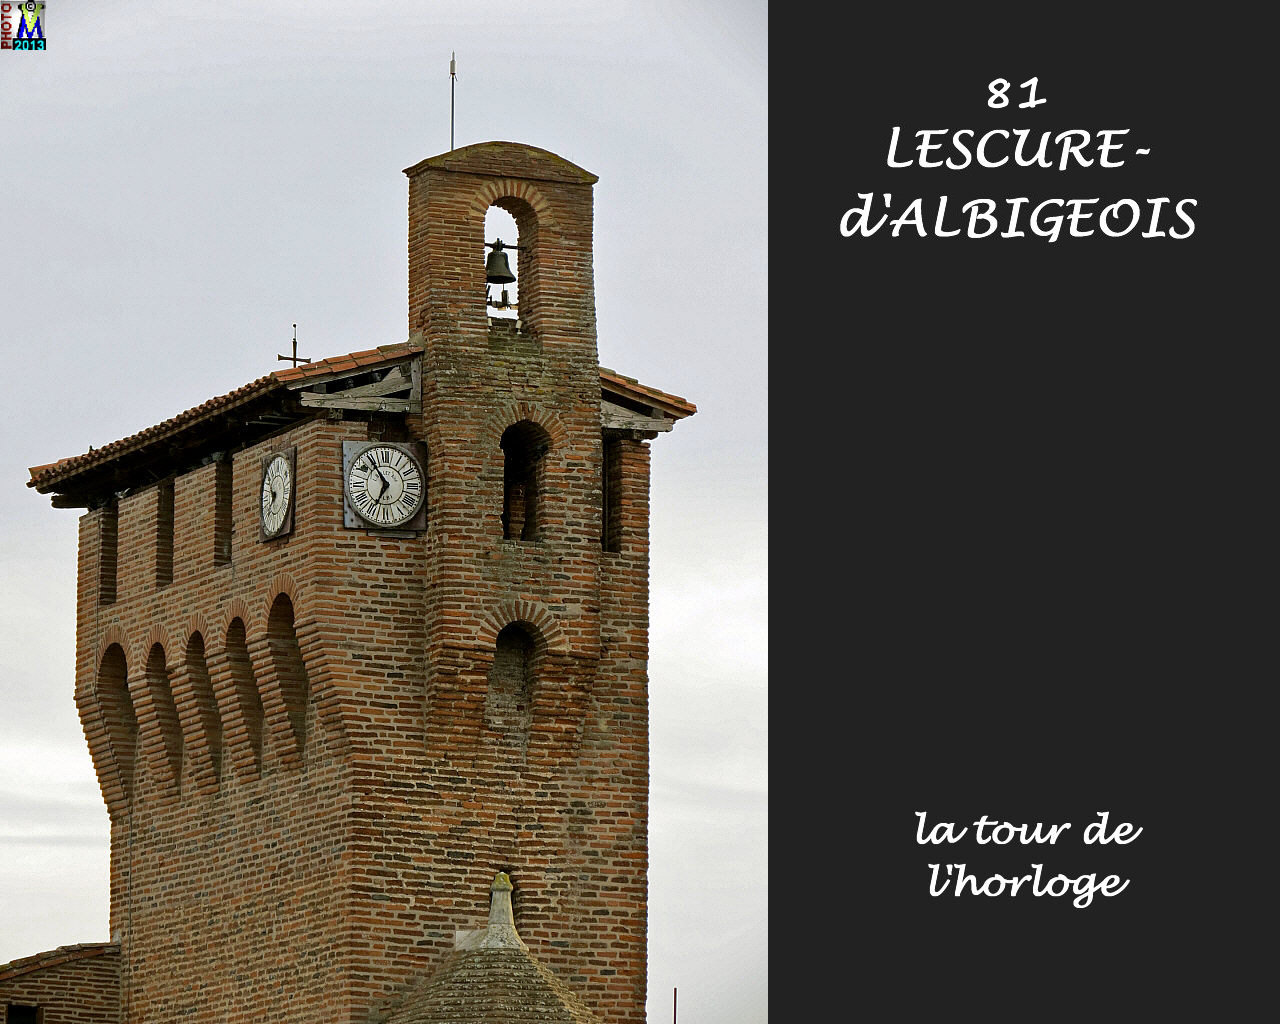 81LESCURE-ALBIGEOIS_tour_114.jpg